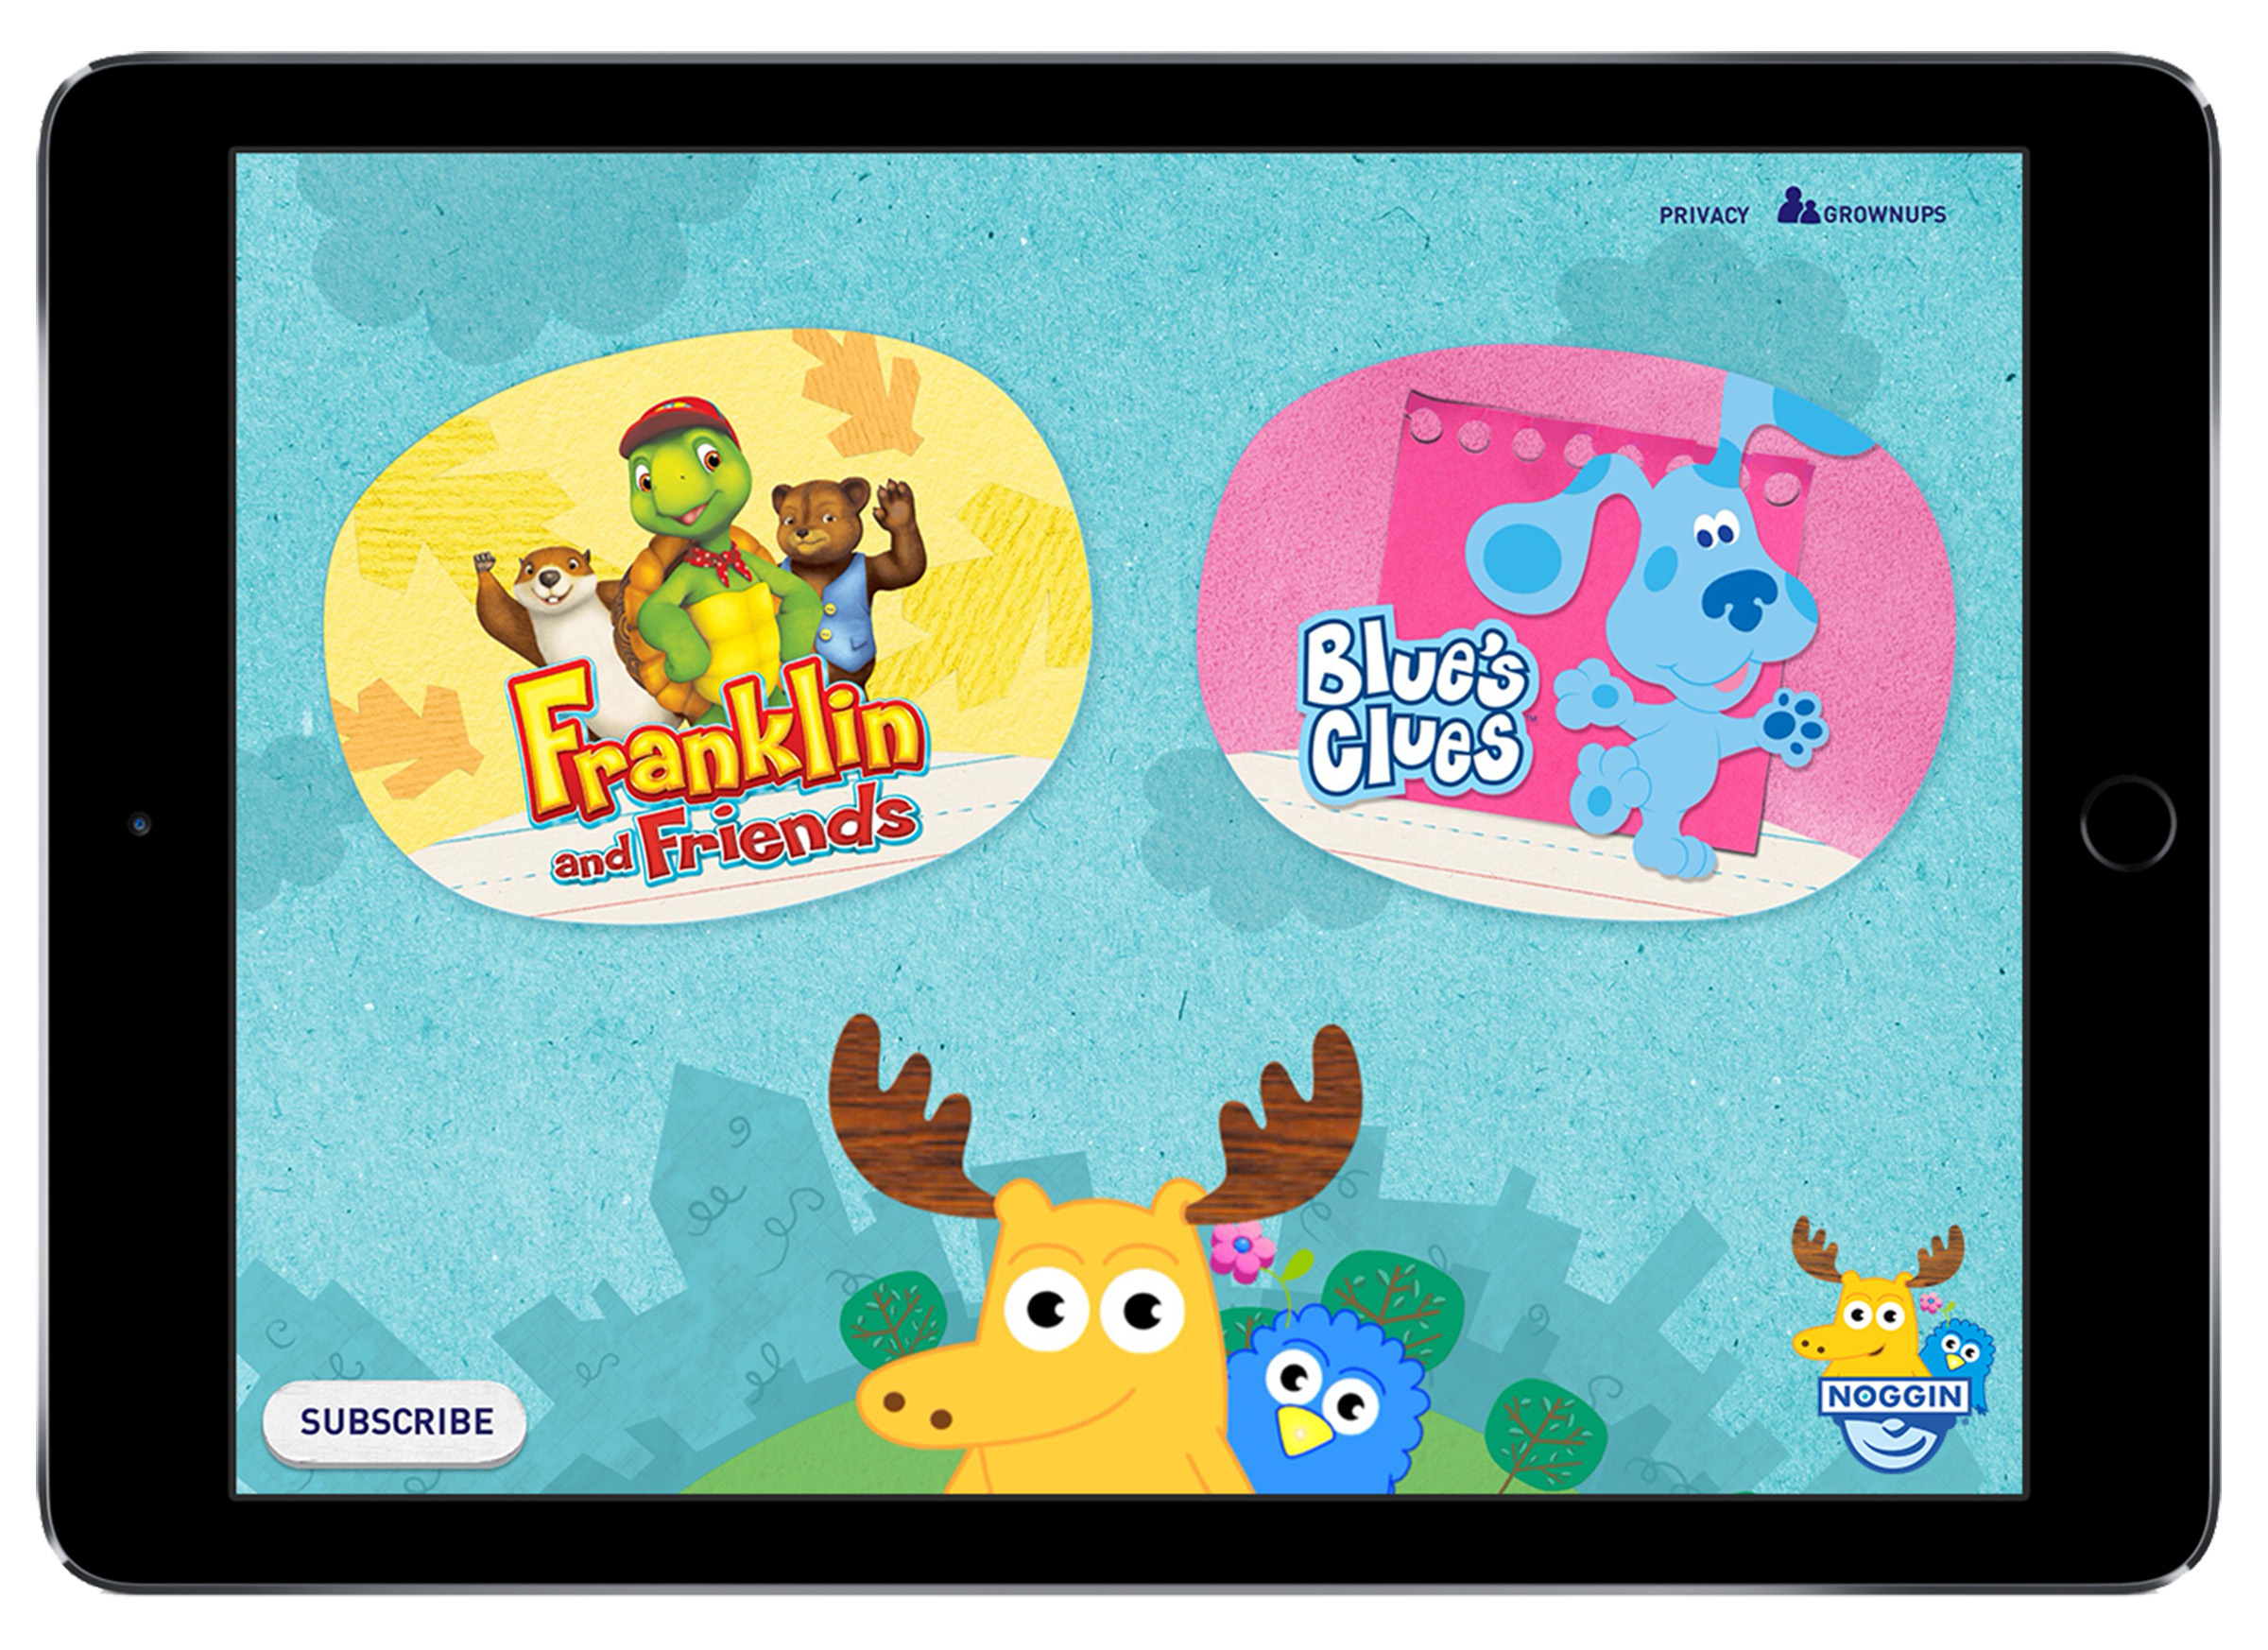 Nickelodeon Launches Noggin--New Mobile Subscription Service for ...